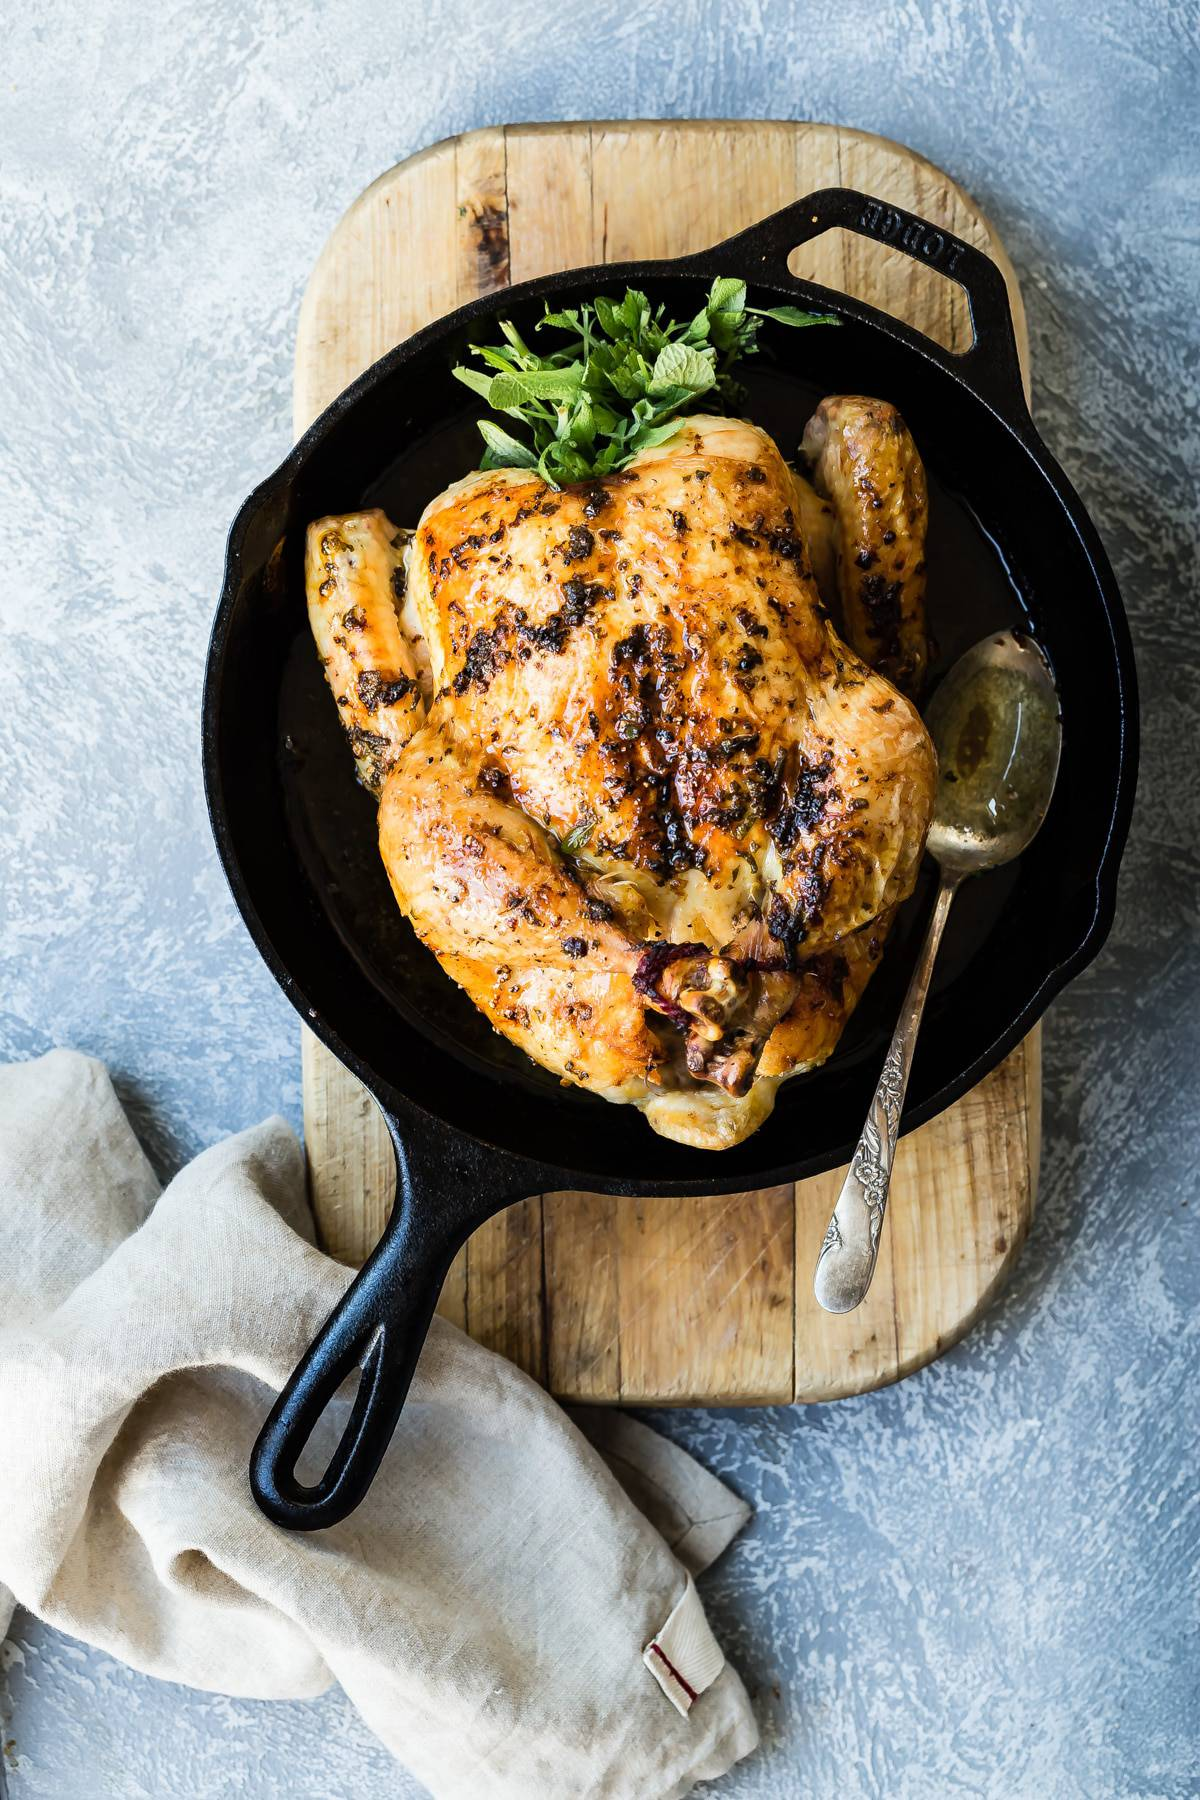 Make this juicy roast chicken covered in a buttery sage spread for dinner! It's so easy, healthy and everyone will love it! #roastchicken #familystyle #familydinners #easydinners